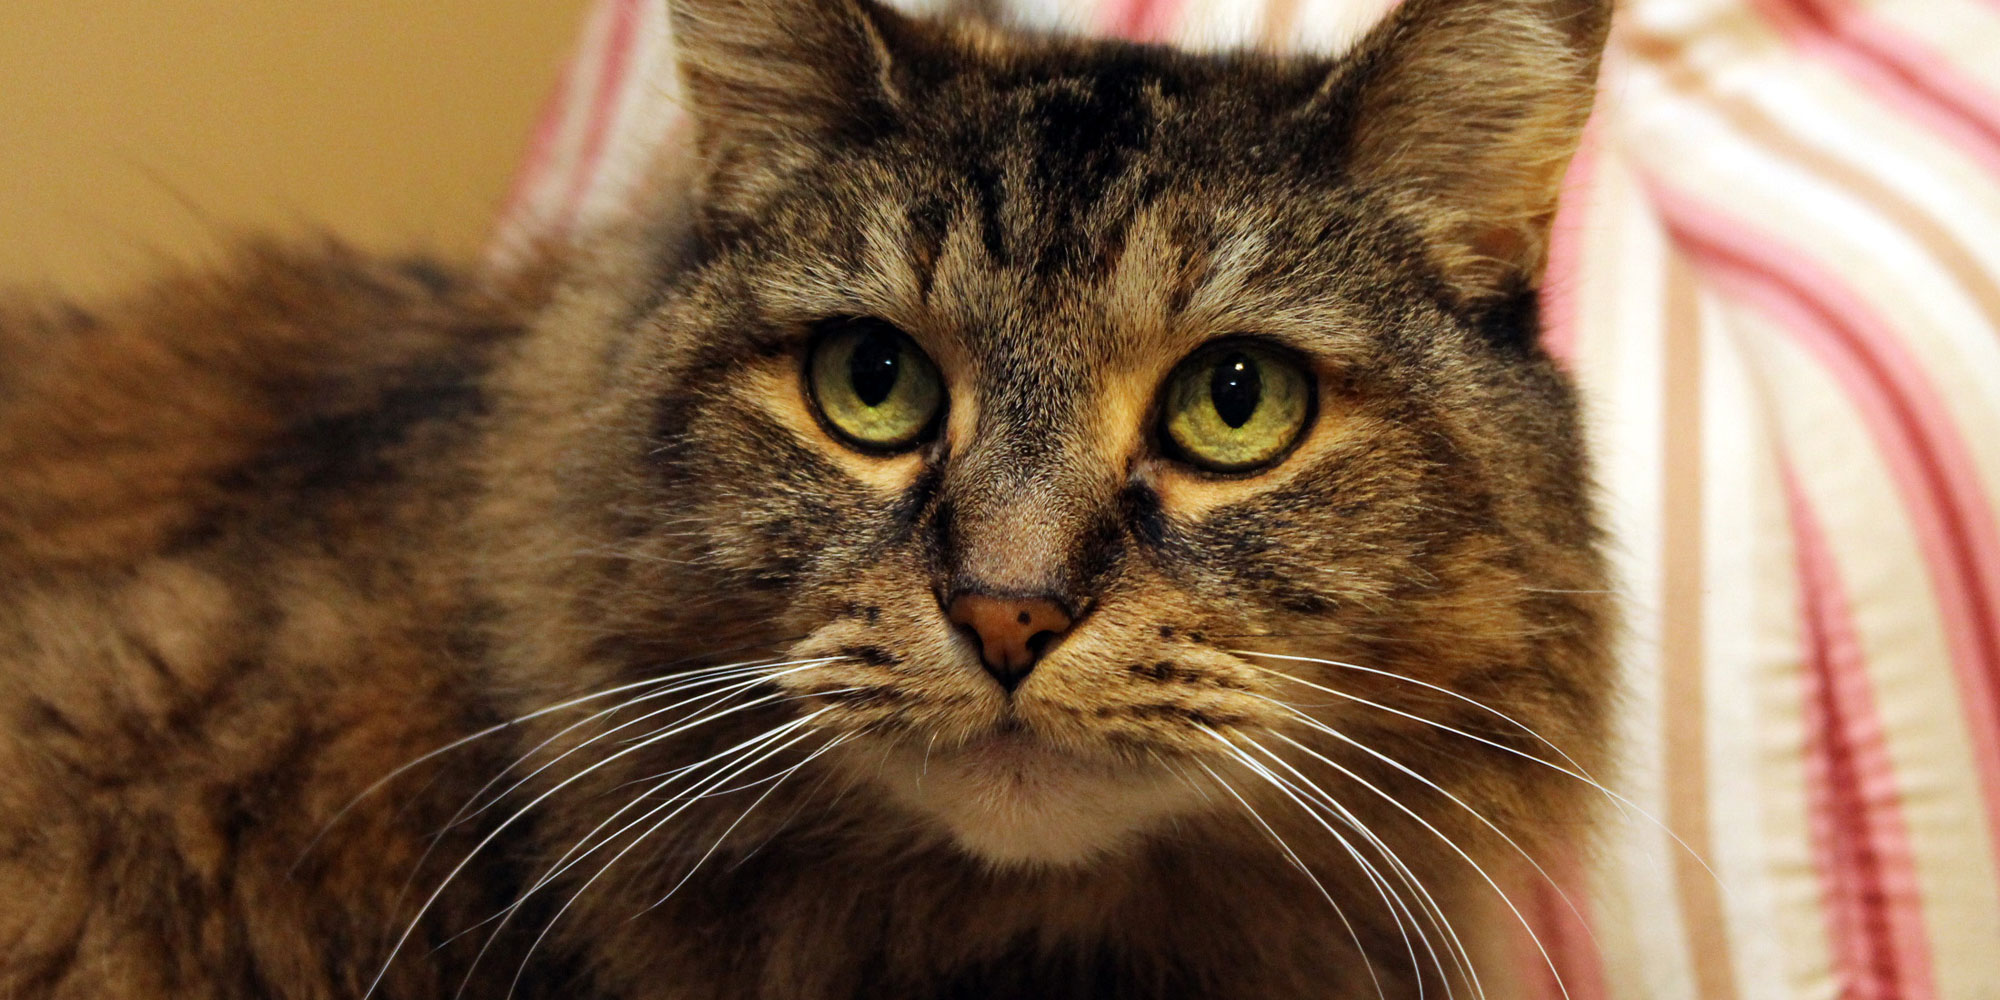 Profile image of the tabby cat Mary Jane